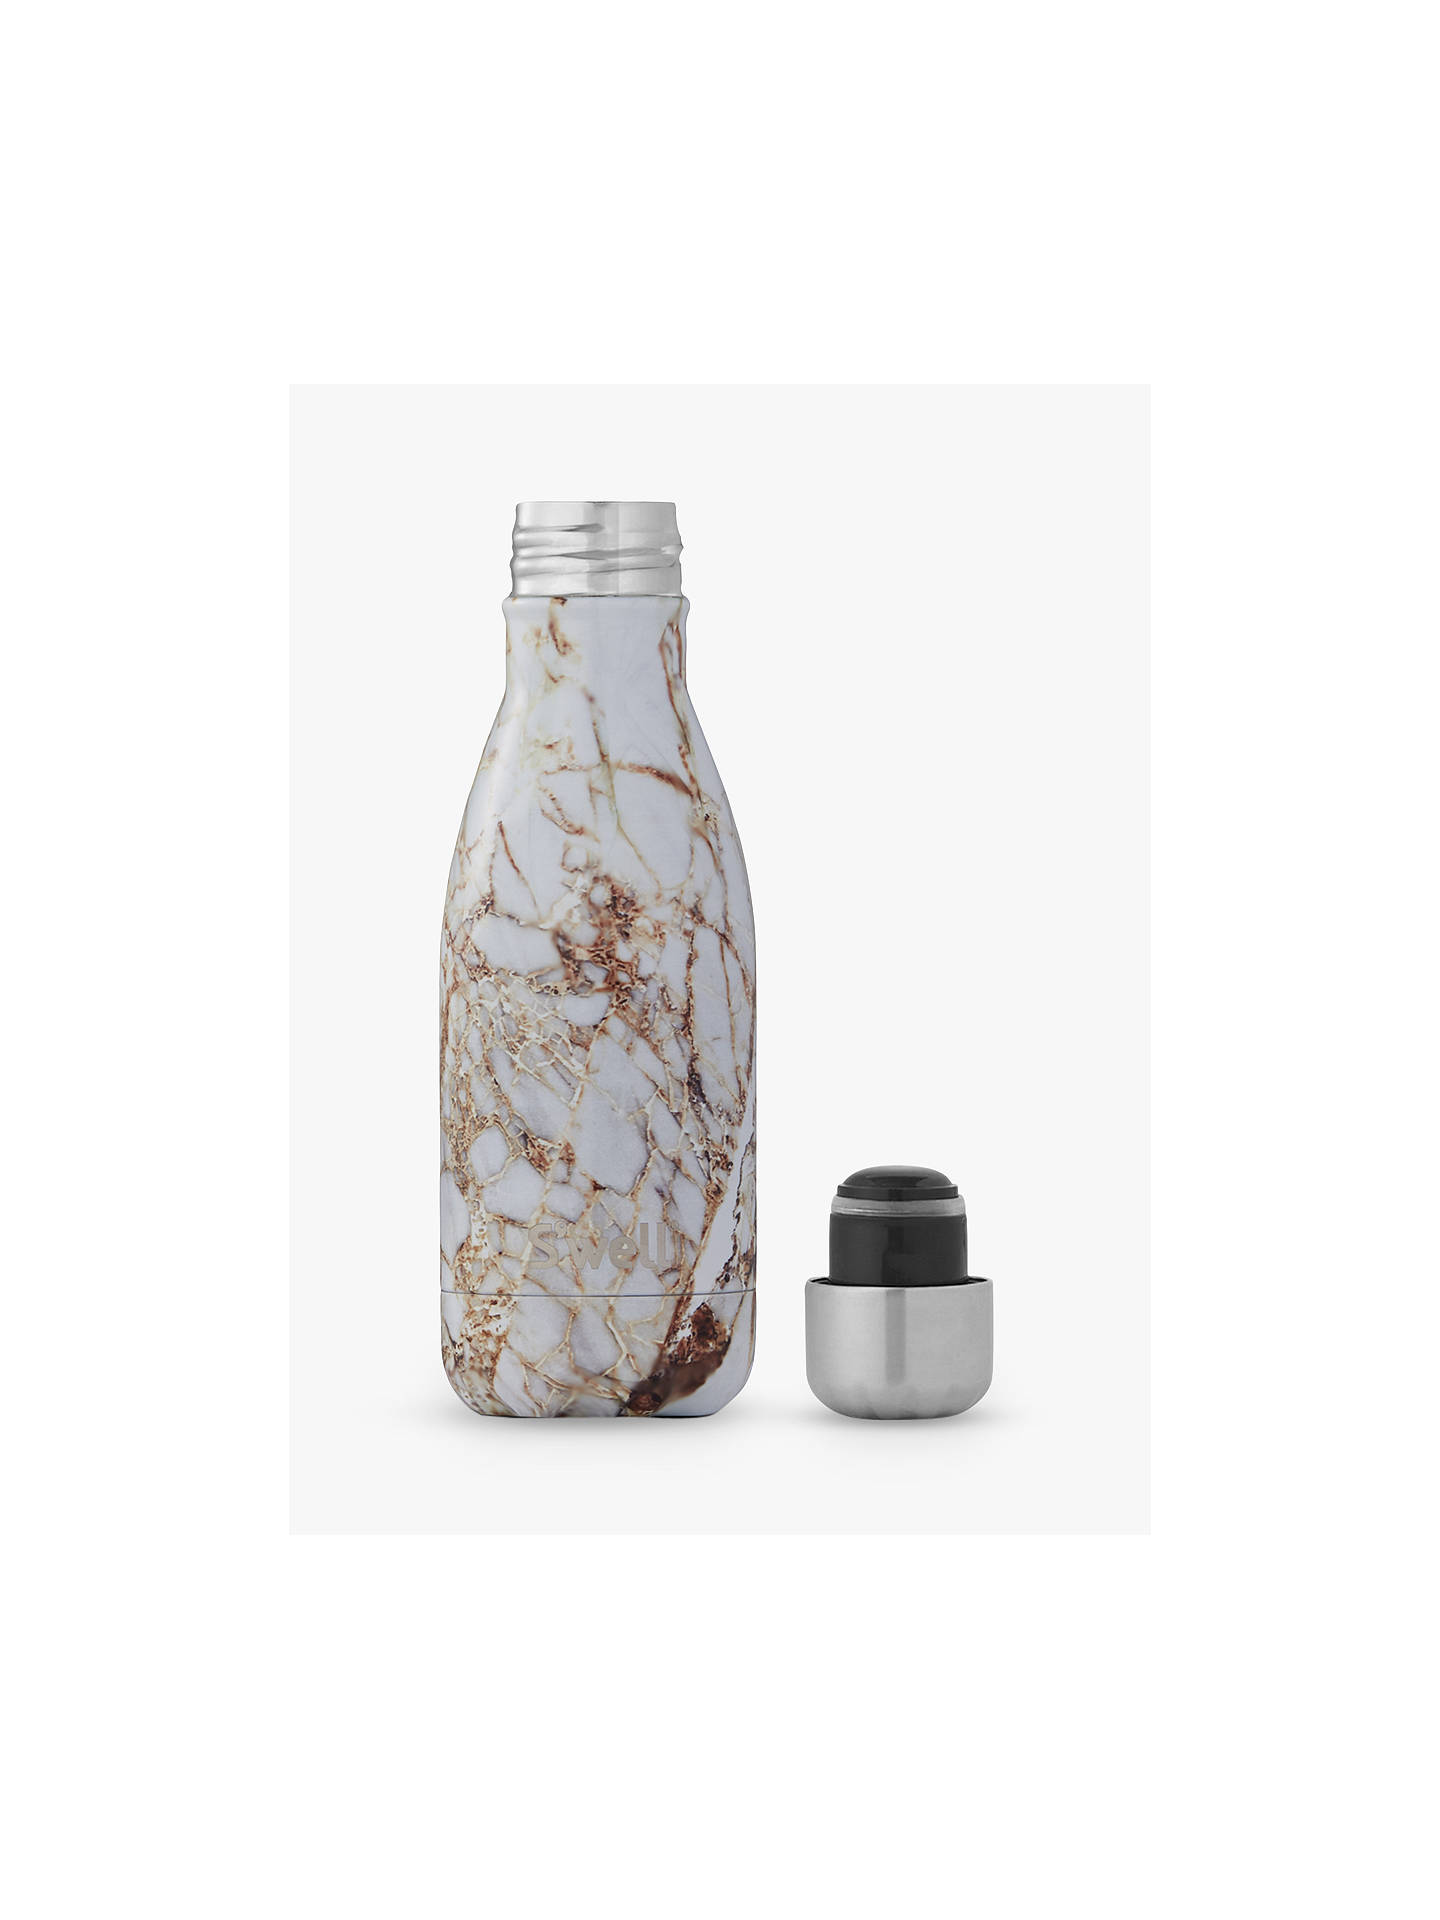 Buy S'well Calacatta Gold Marble Vacuum Insulated Drinks Bottle, 260ml Online at johnlewis.com